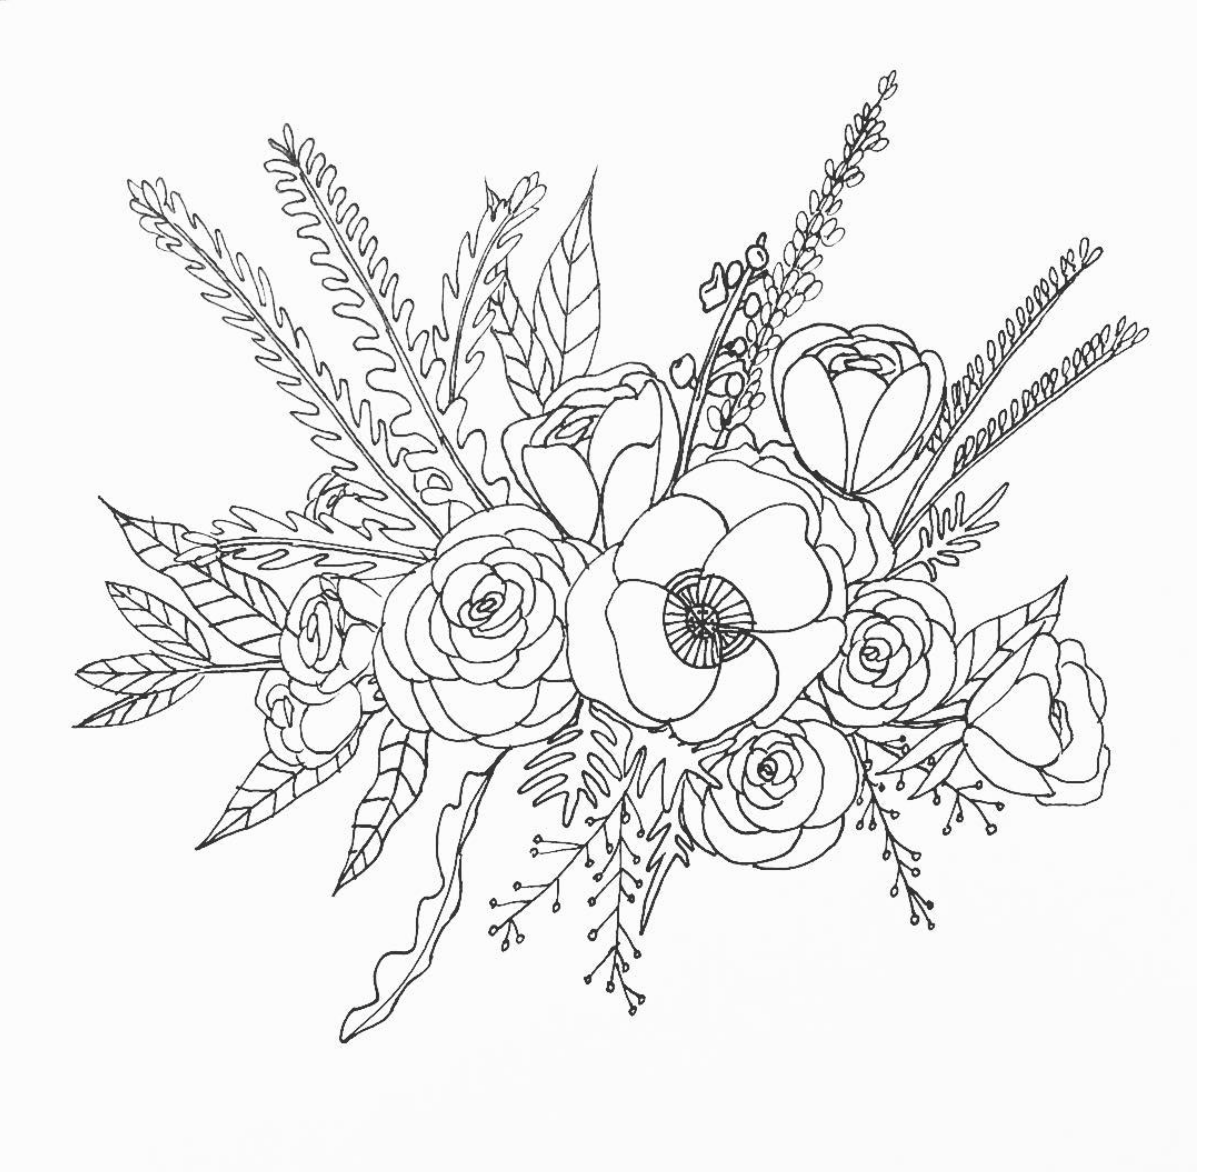 Line Art Flower Drawing : Line drawing flower illustration floral bouquet art